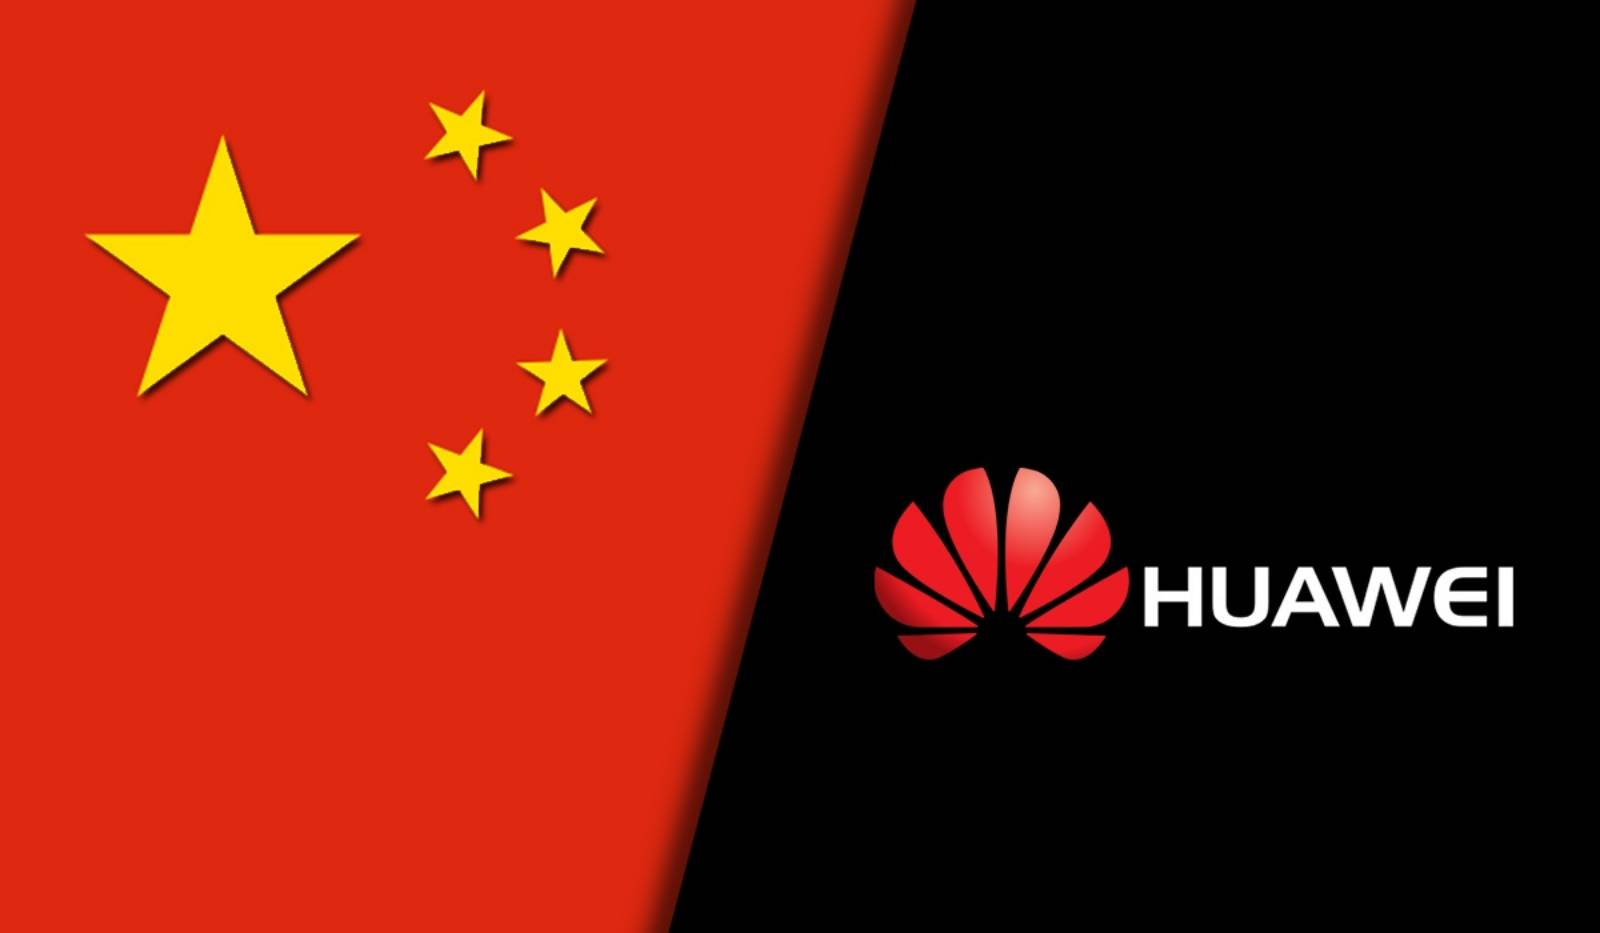 Huawei consult